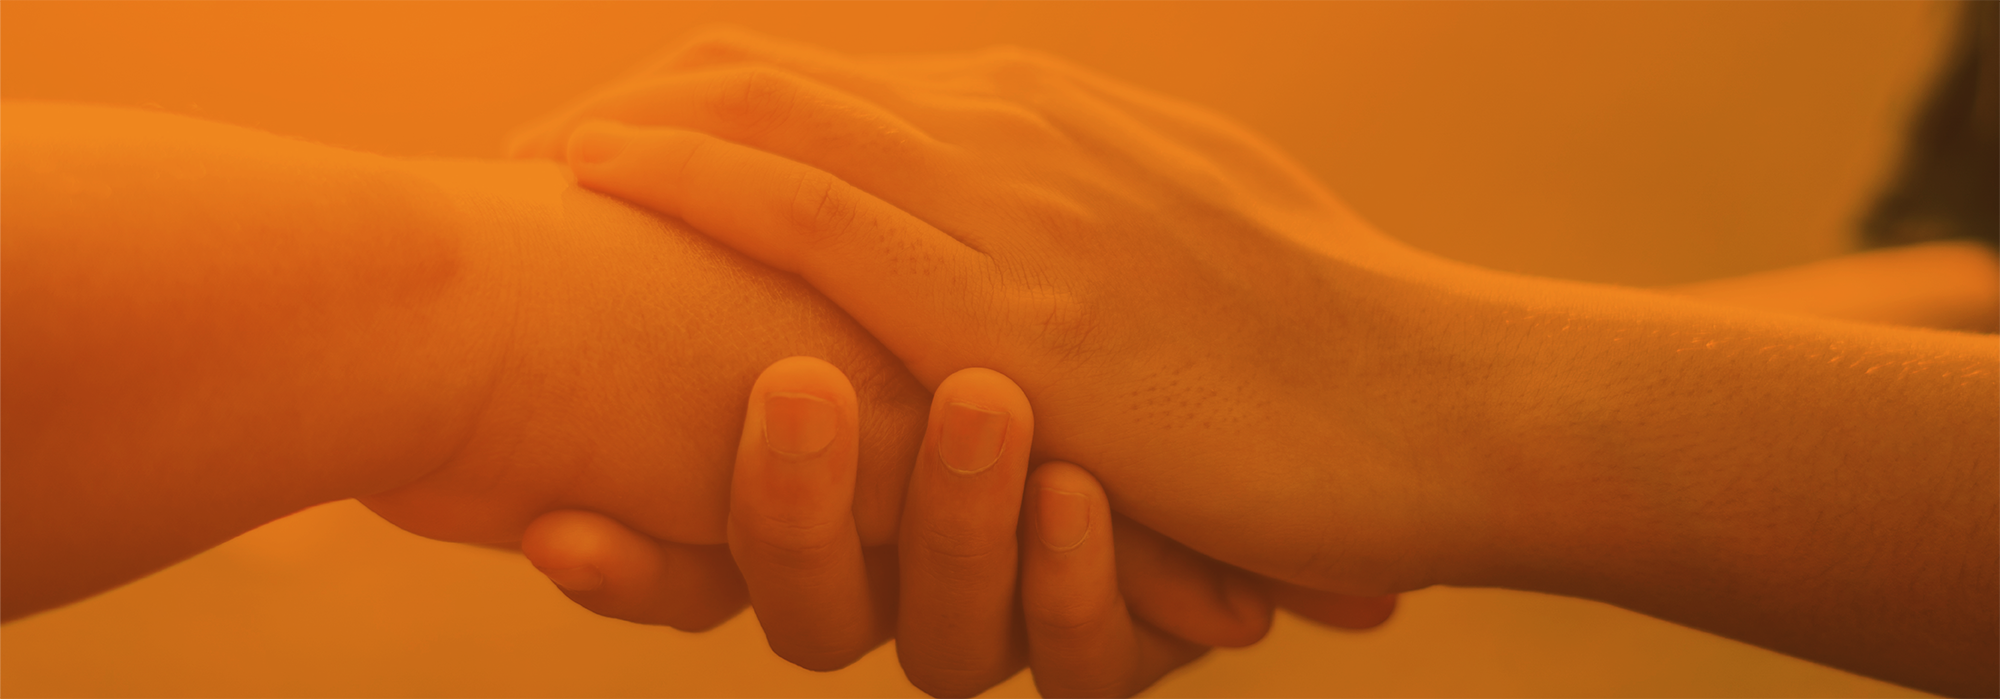 Hands holding each other in care